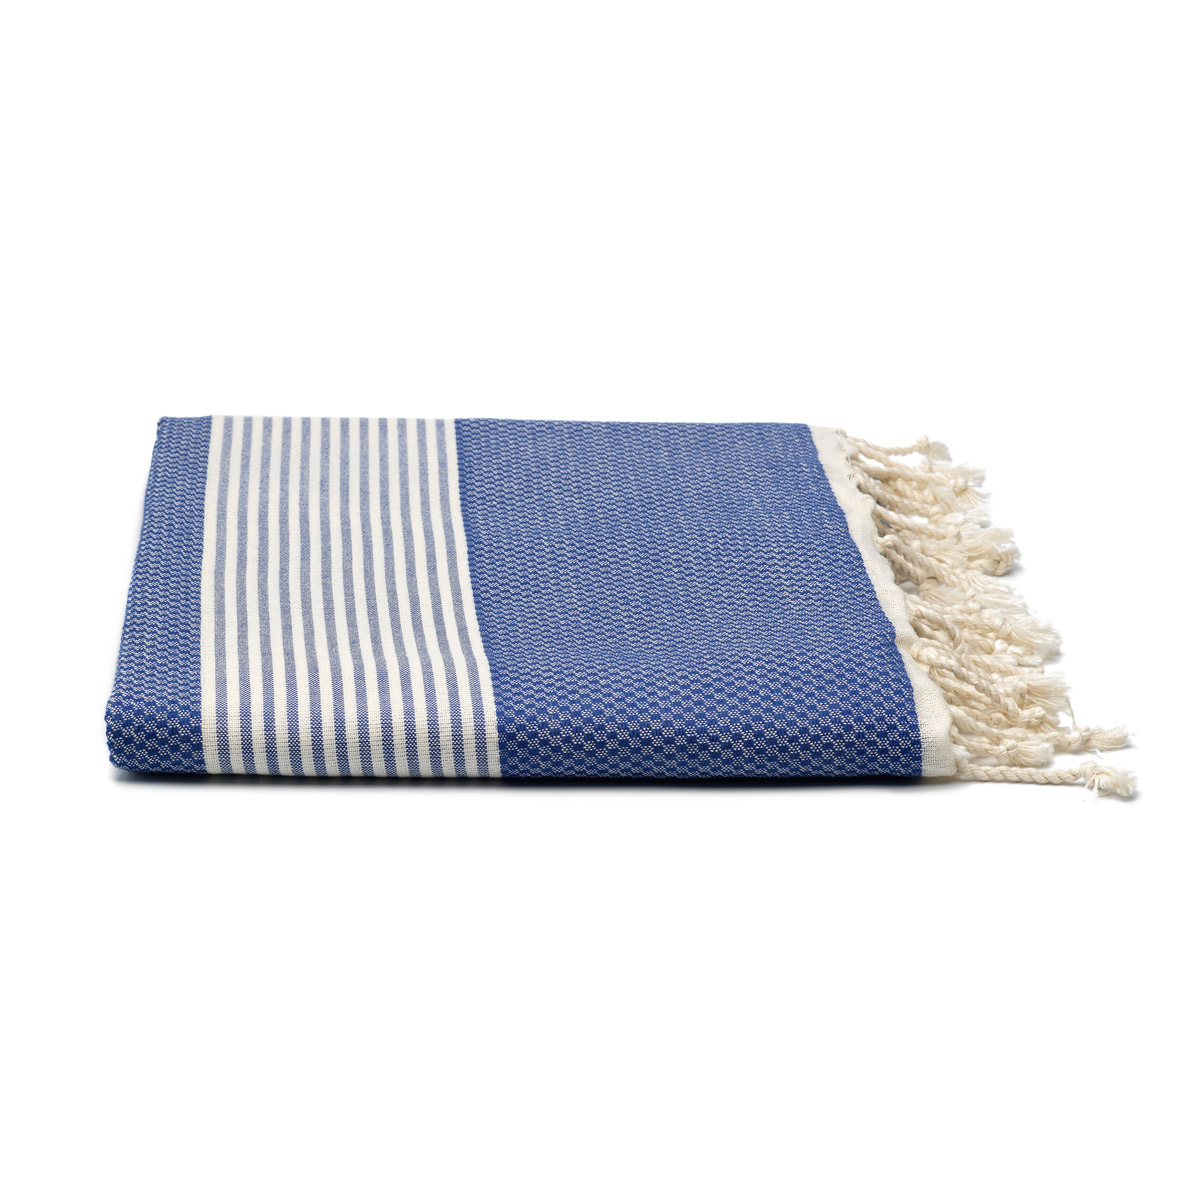 Happy Towels - strandlaken donkerblauw